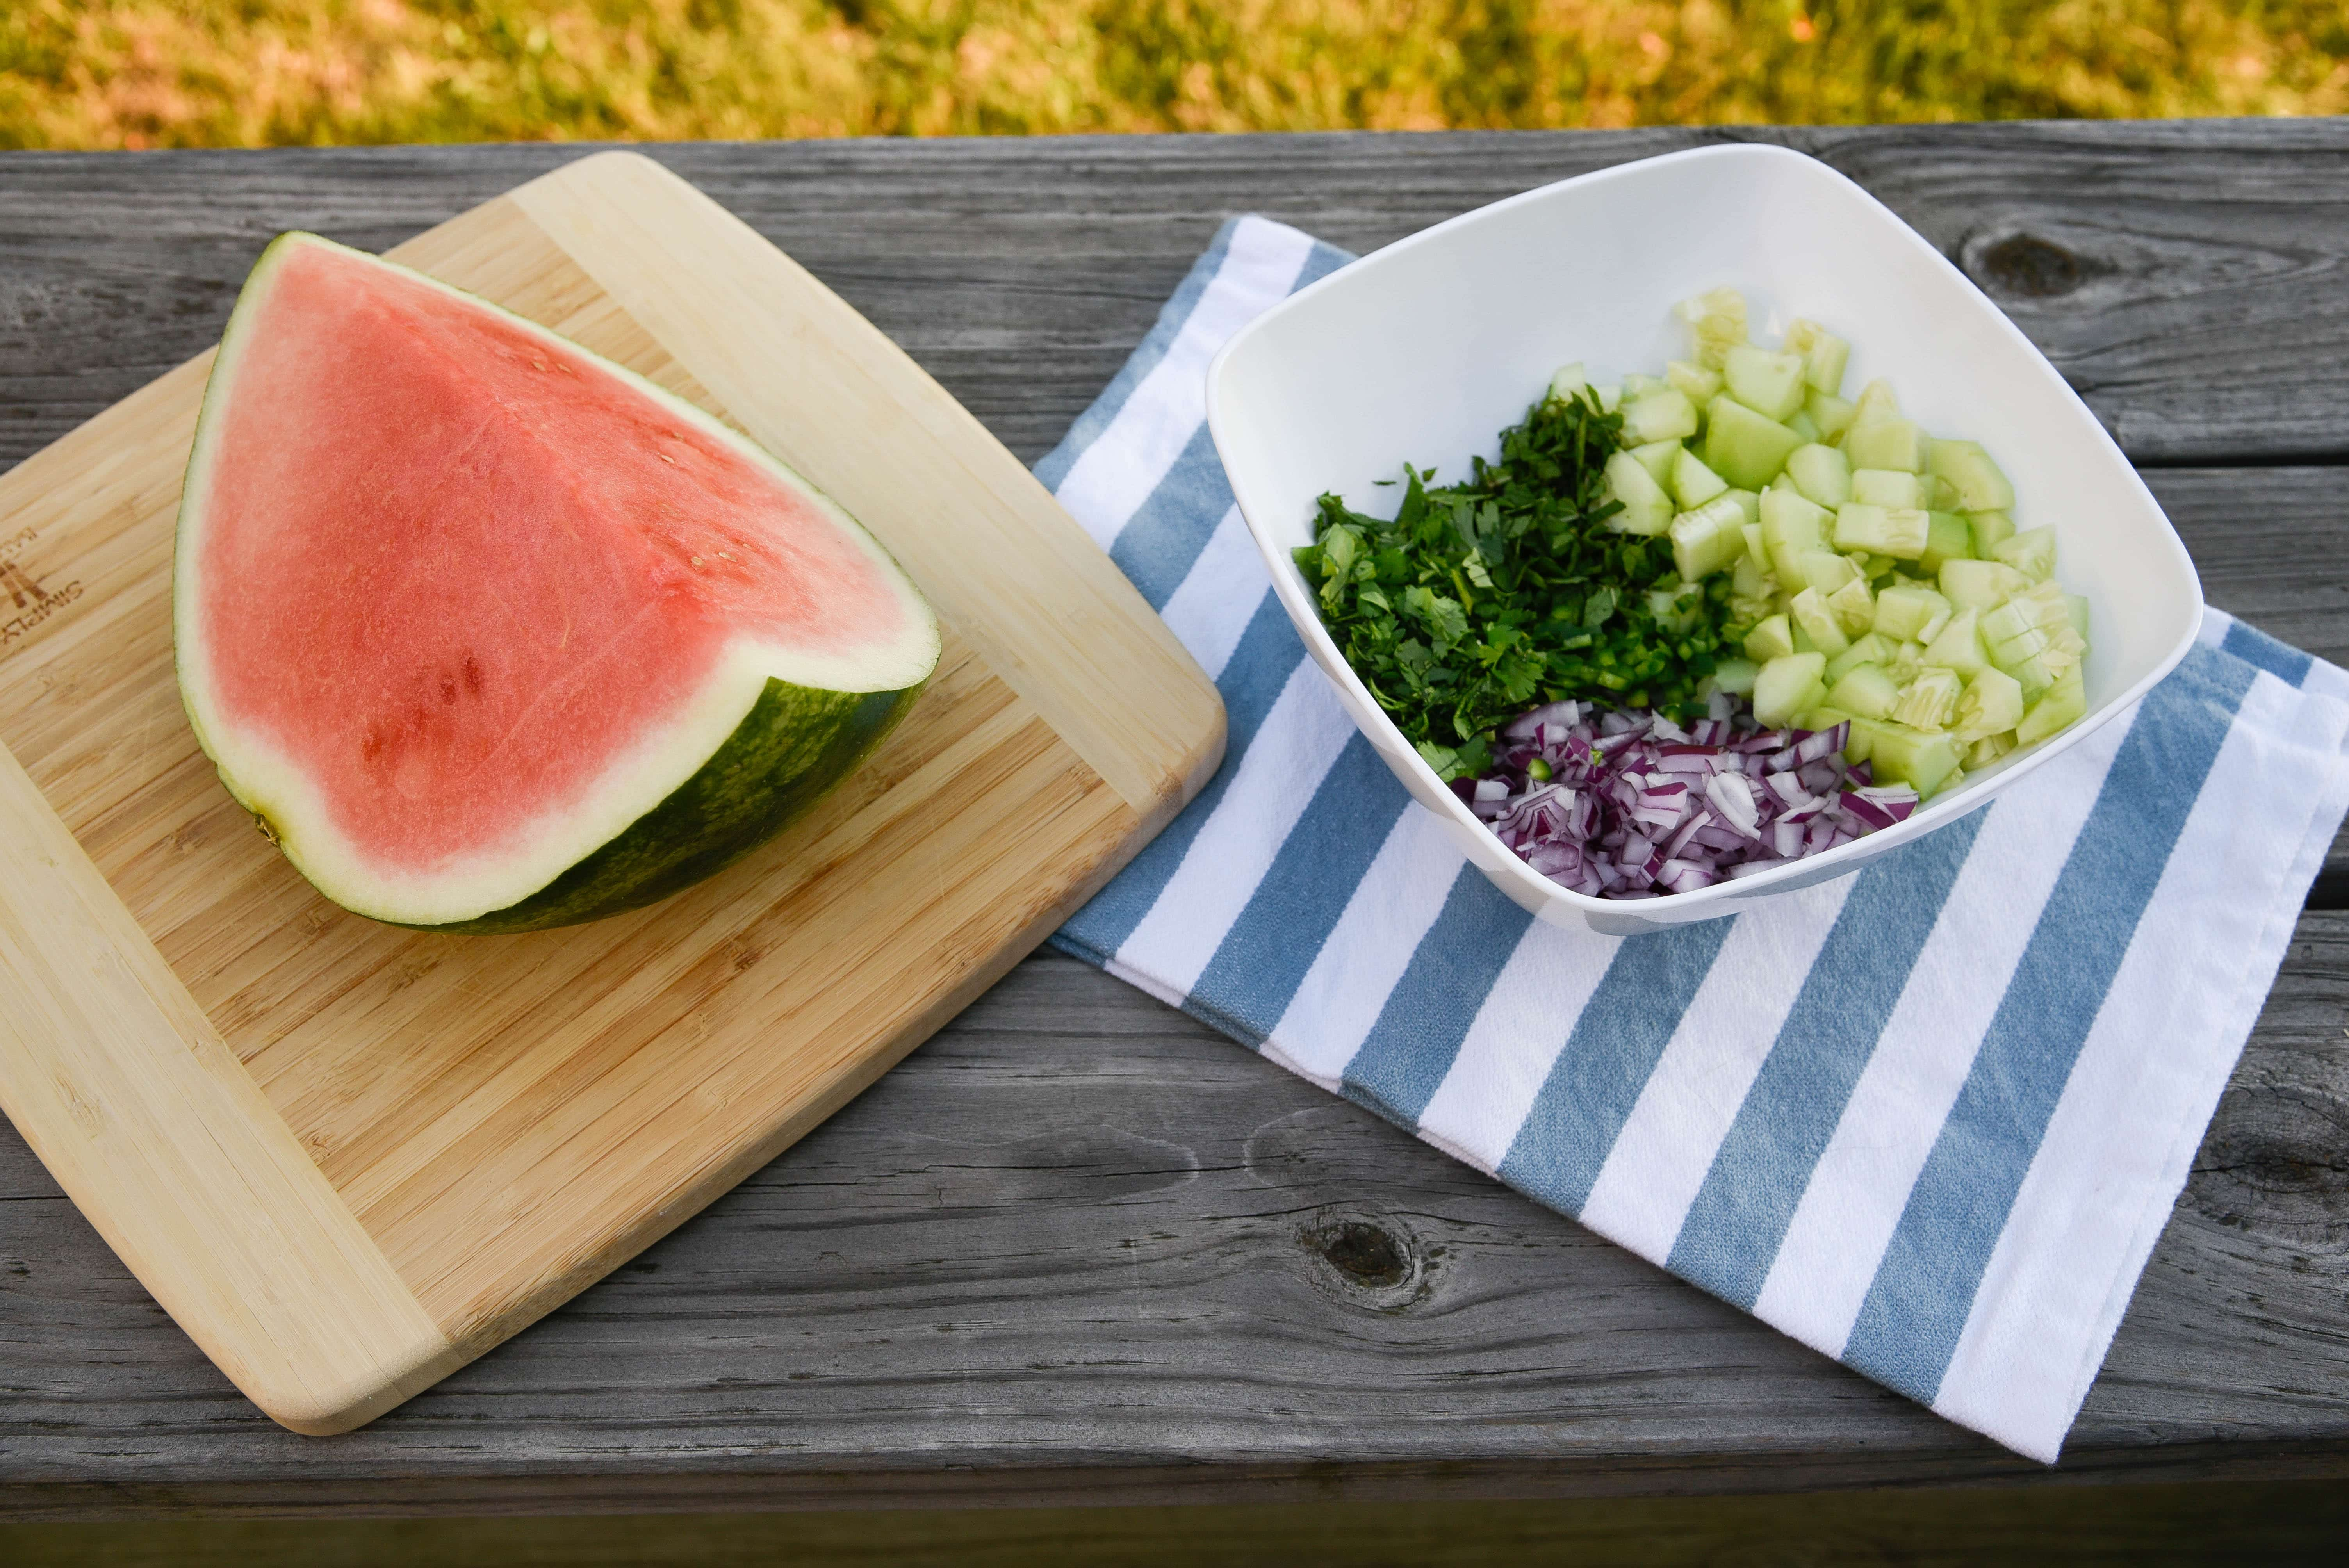 Watermelon quarter with a bowl fo salsa ingredients.